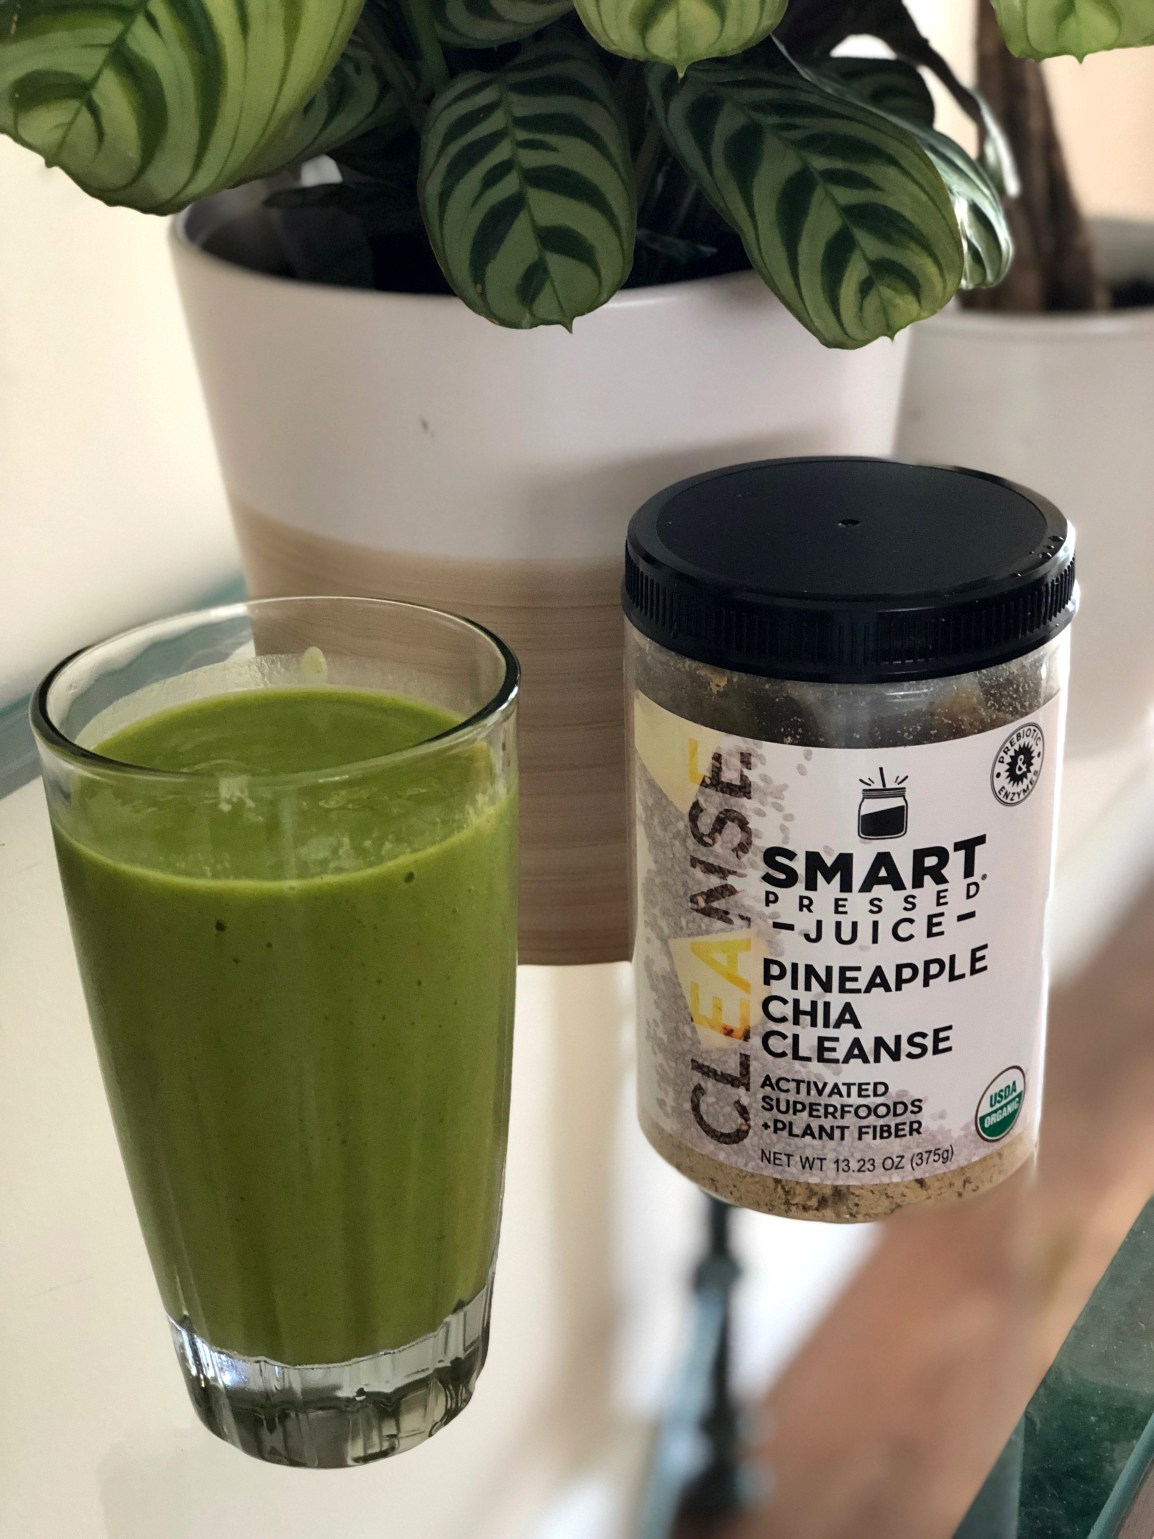 Smart Pressed Juice Pineapple Chia Cleanse Smoothie and Product